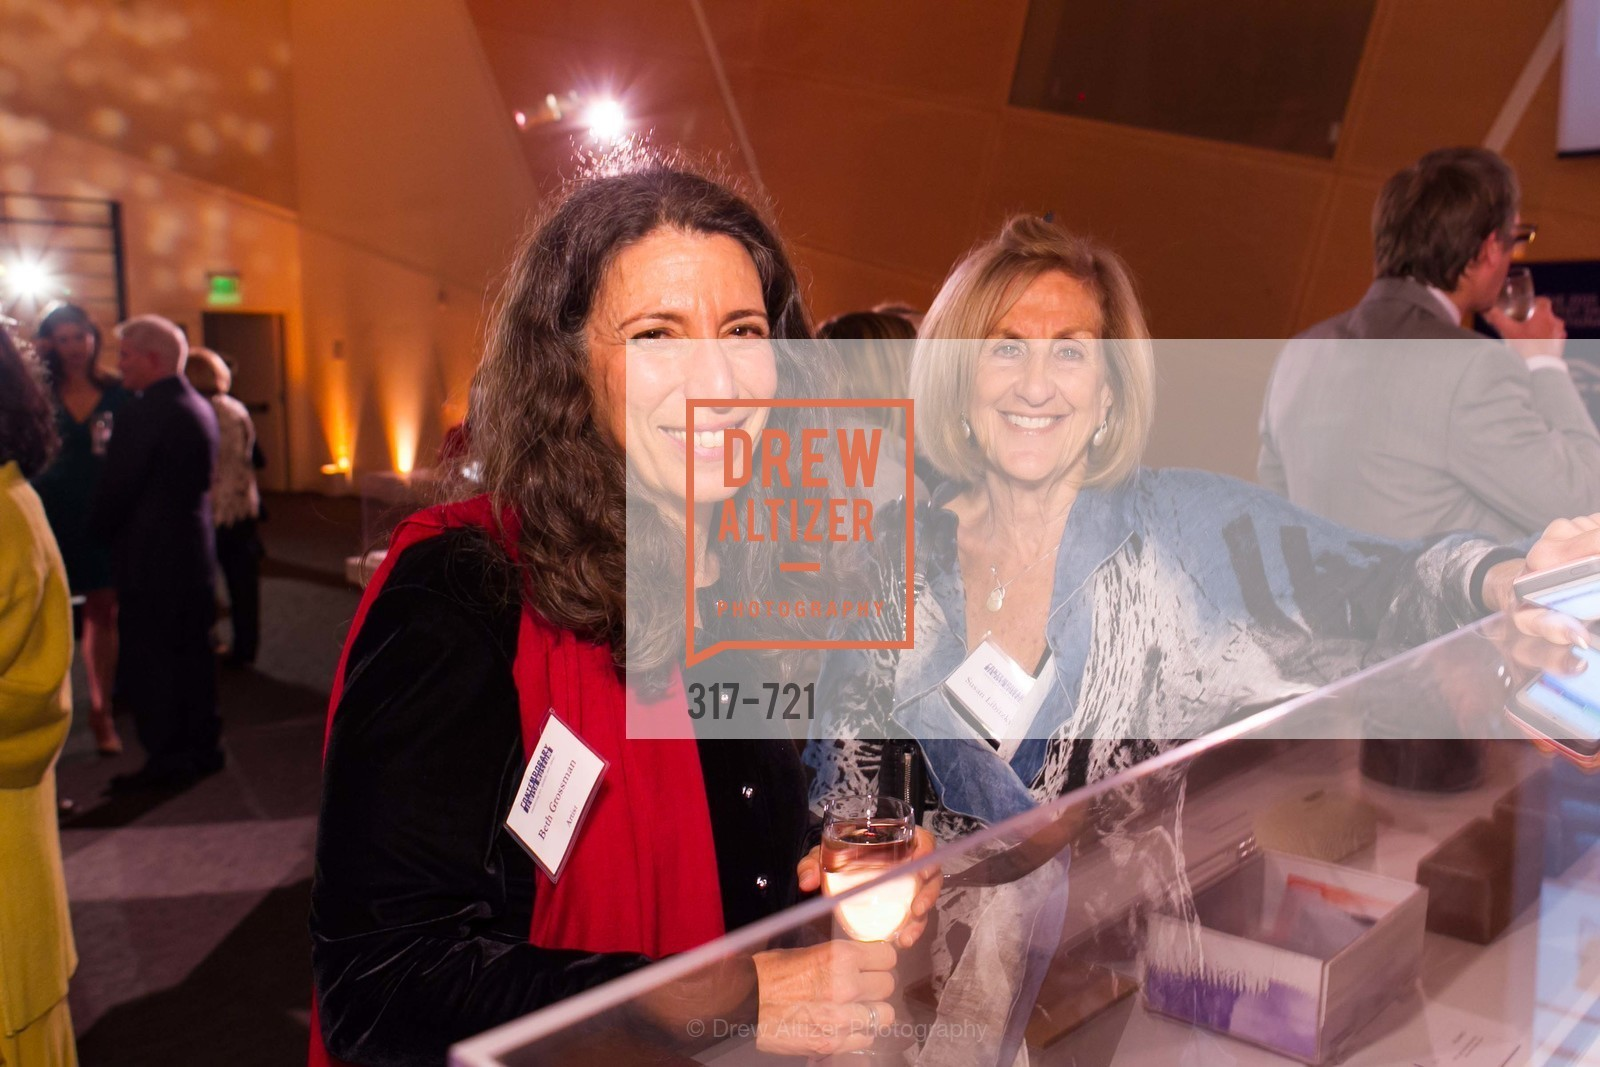 Beth Grossman, Susan Libitzky, The 2015 Dorothy Saxe Invitational Celebration at the JEWISH MUSEUM, US, May 13th, 2015,Drew Altizer, Drew Altizer Photography, full-service agency, private events, San Francisco photographer, photographer california